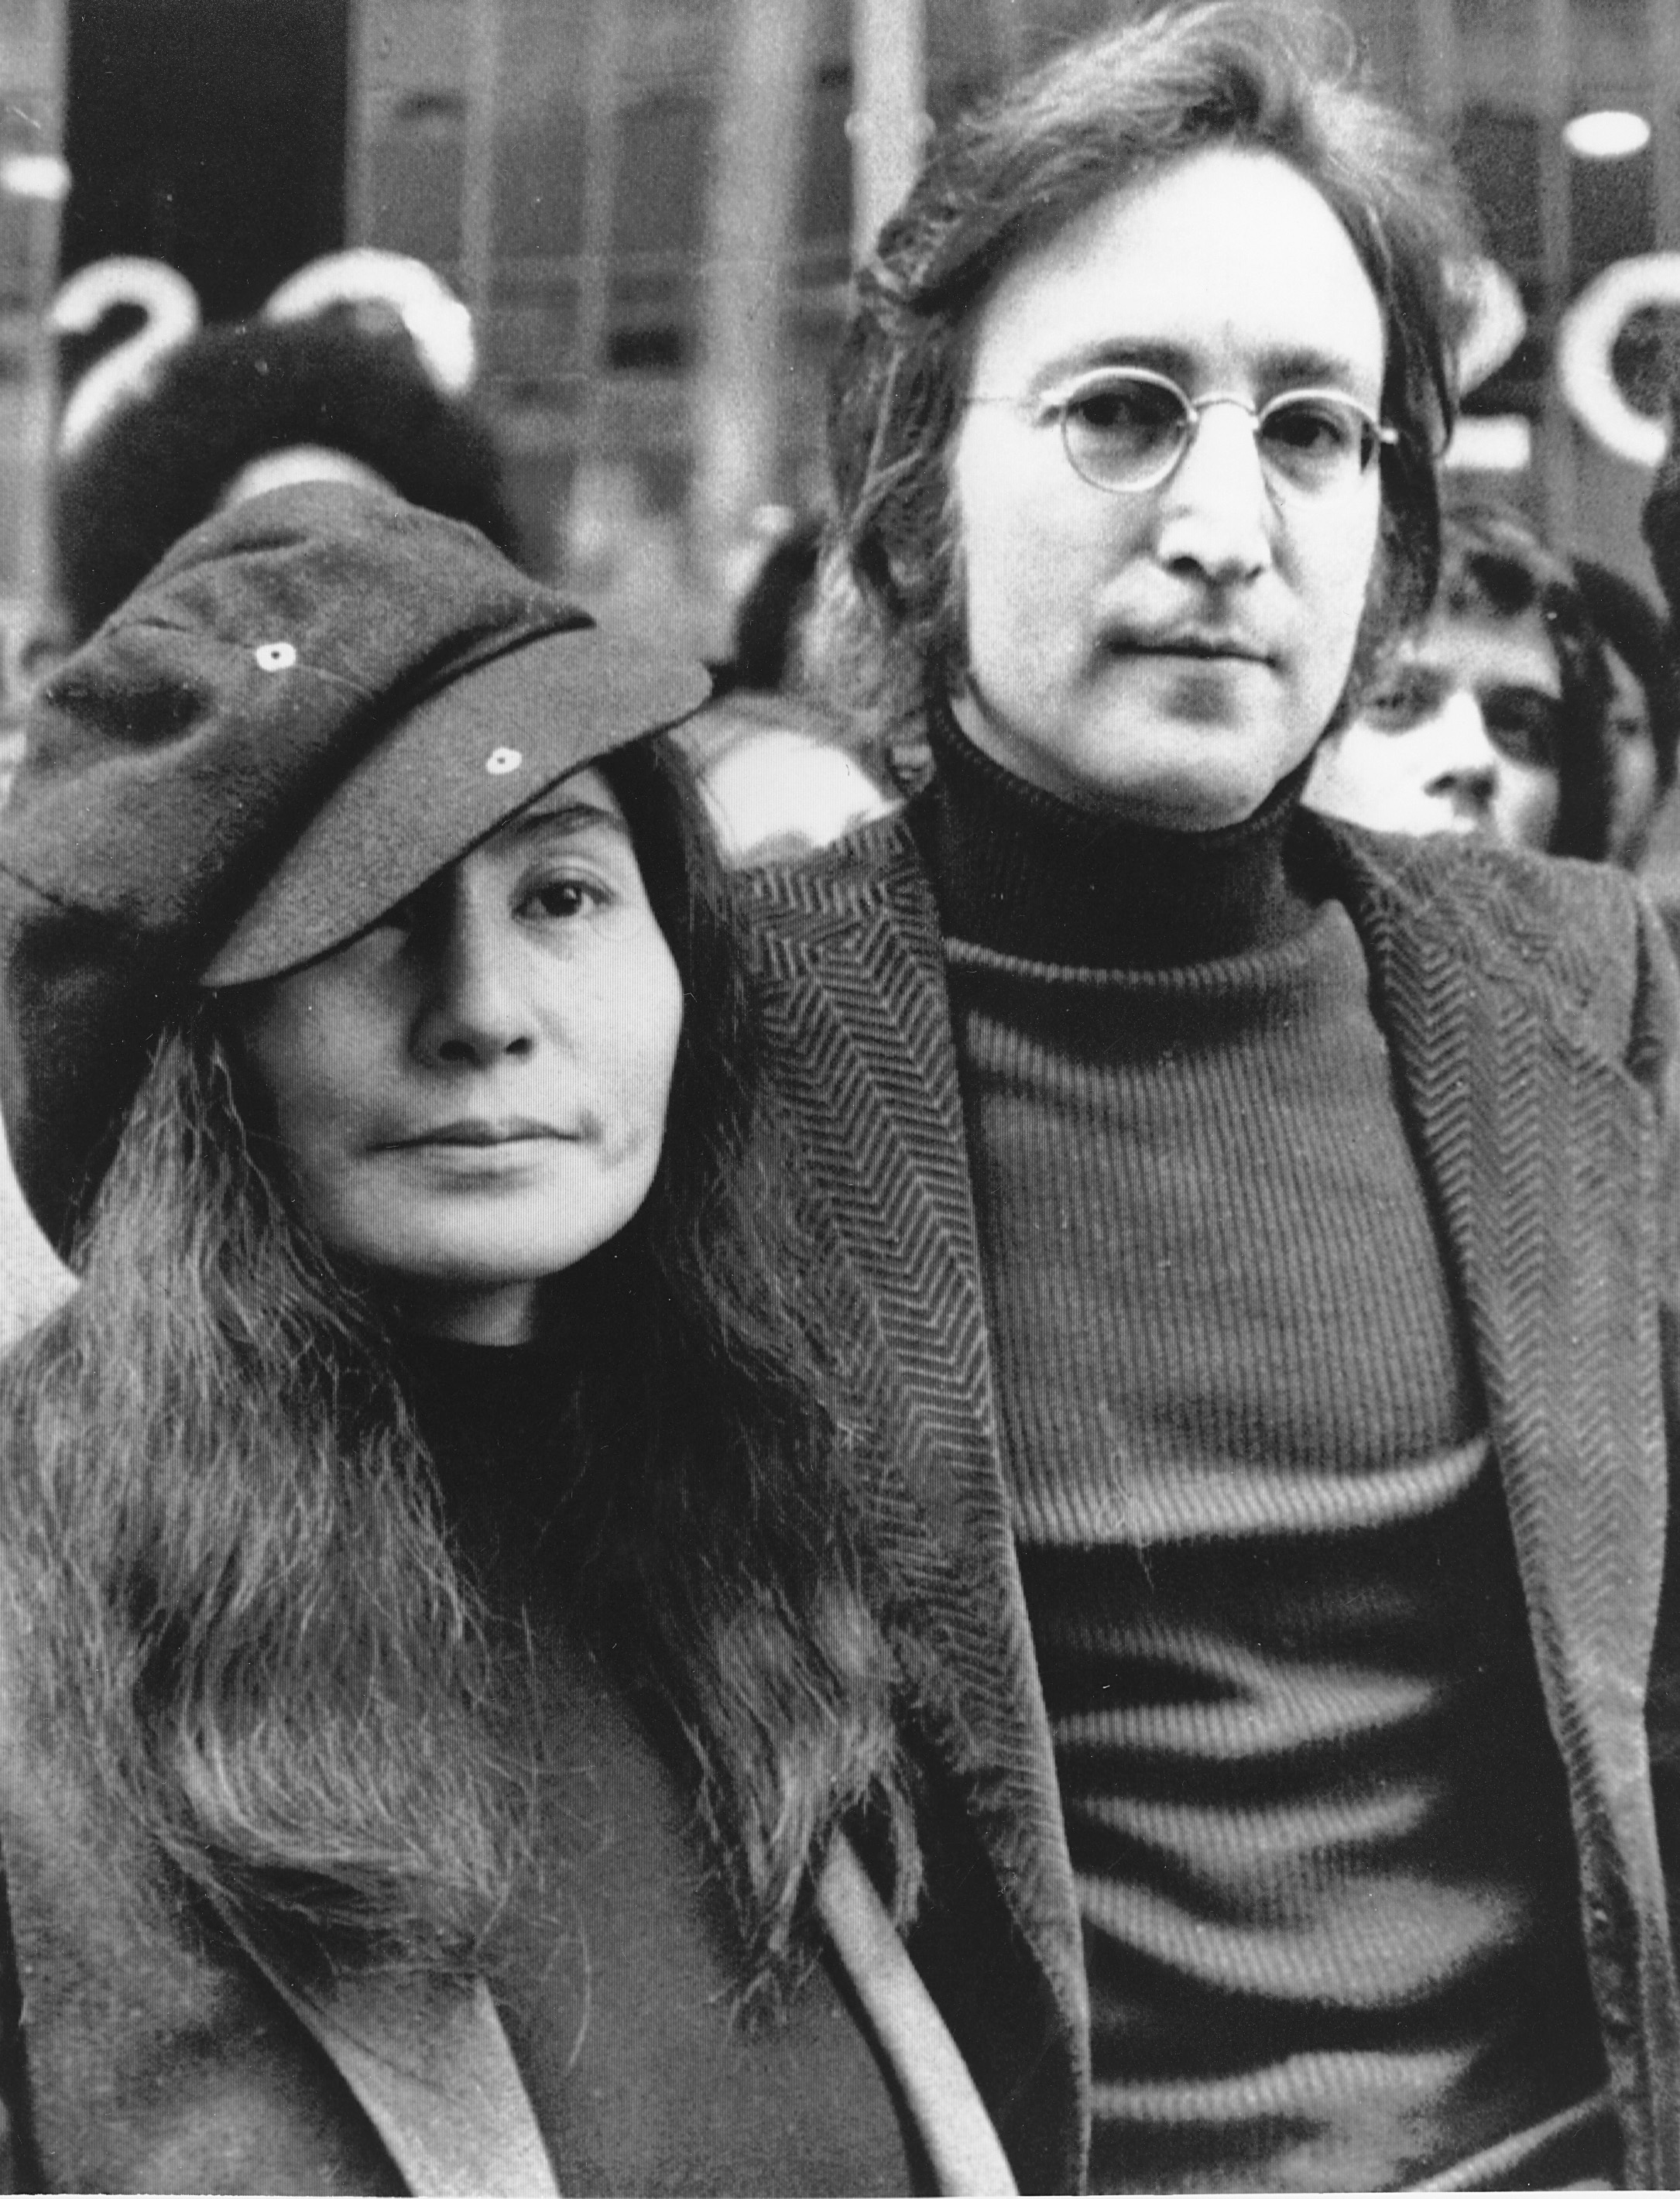 FILE - In this file photo dated April 18, 1972, John Lennon, right, and Yoko Ono, left, are seen outside the U.S. Immigration offices in New York City, USA. German police said Monday, Nov. 20, 2017 they have arrested a man suspected of handling stolen objects from the estate of John Lennon, including diaries which were stolen from Lennon's widow, Yoko Ono, in New York in 2006. (AP Photo, File)